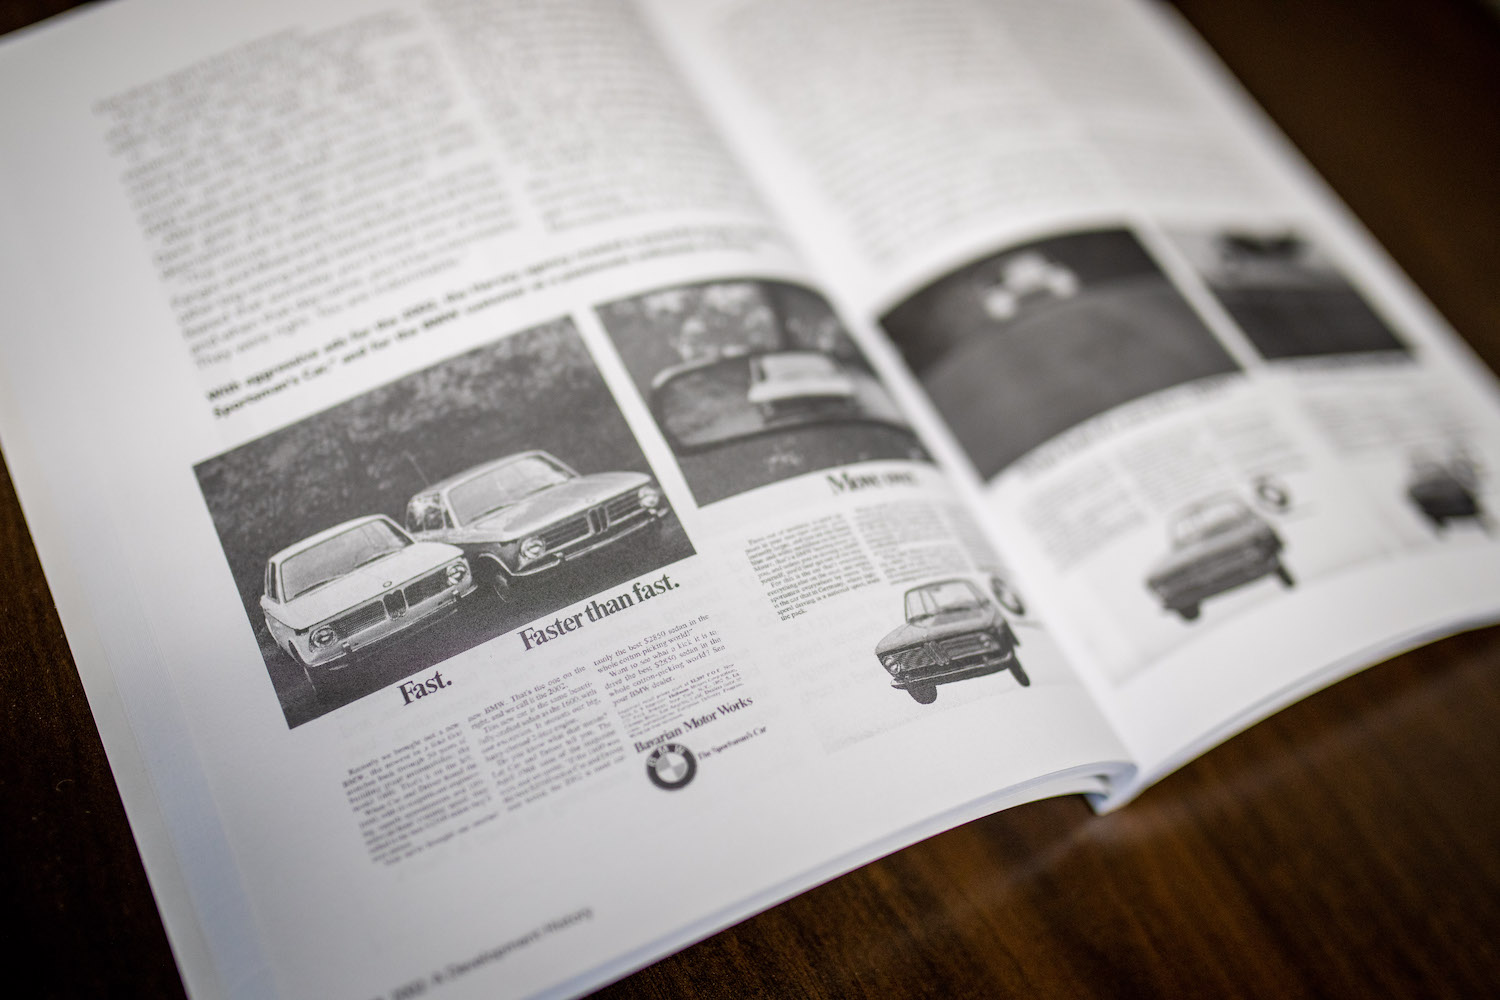 2002 bmw book open pages